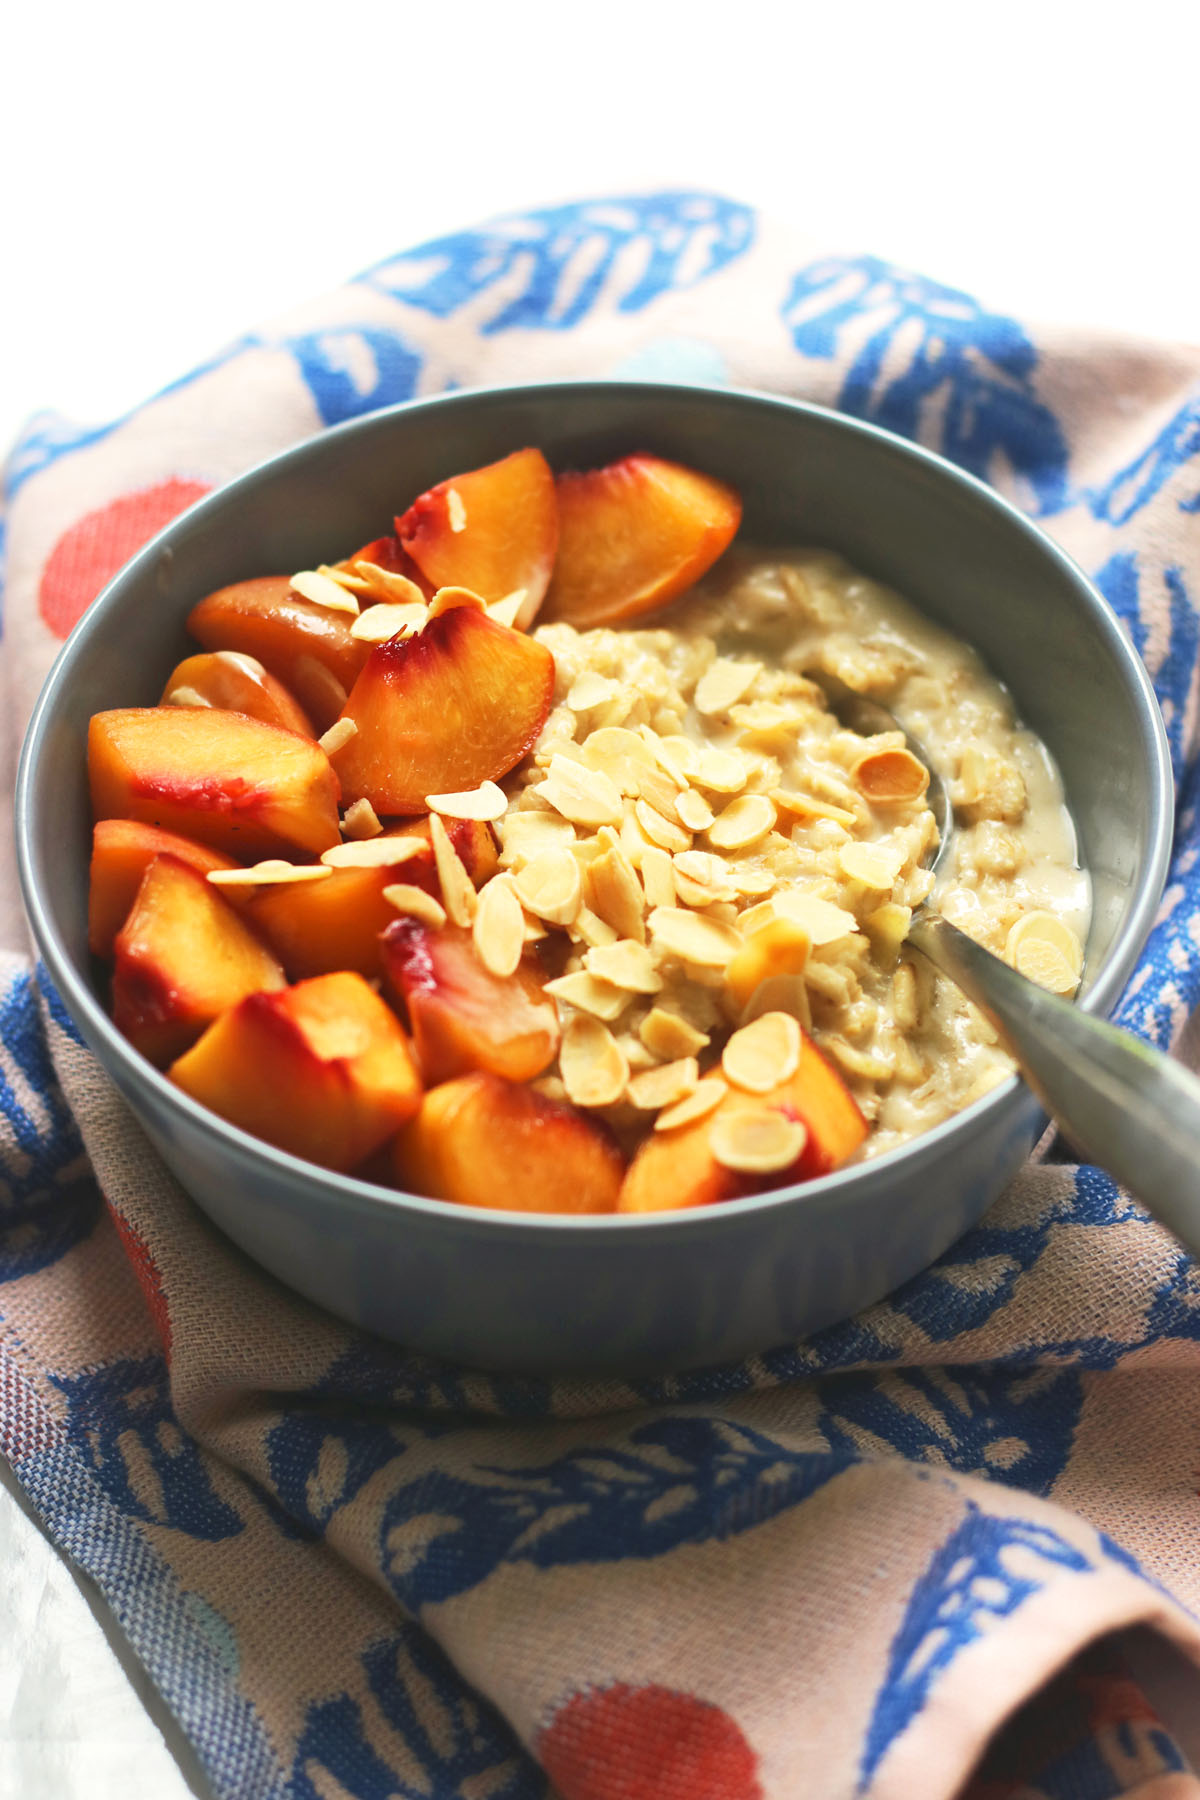 Cardamom porridge with almonds and peaches